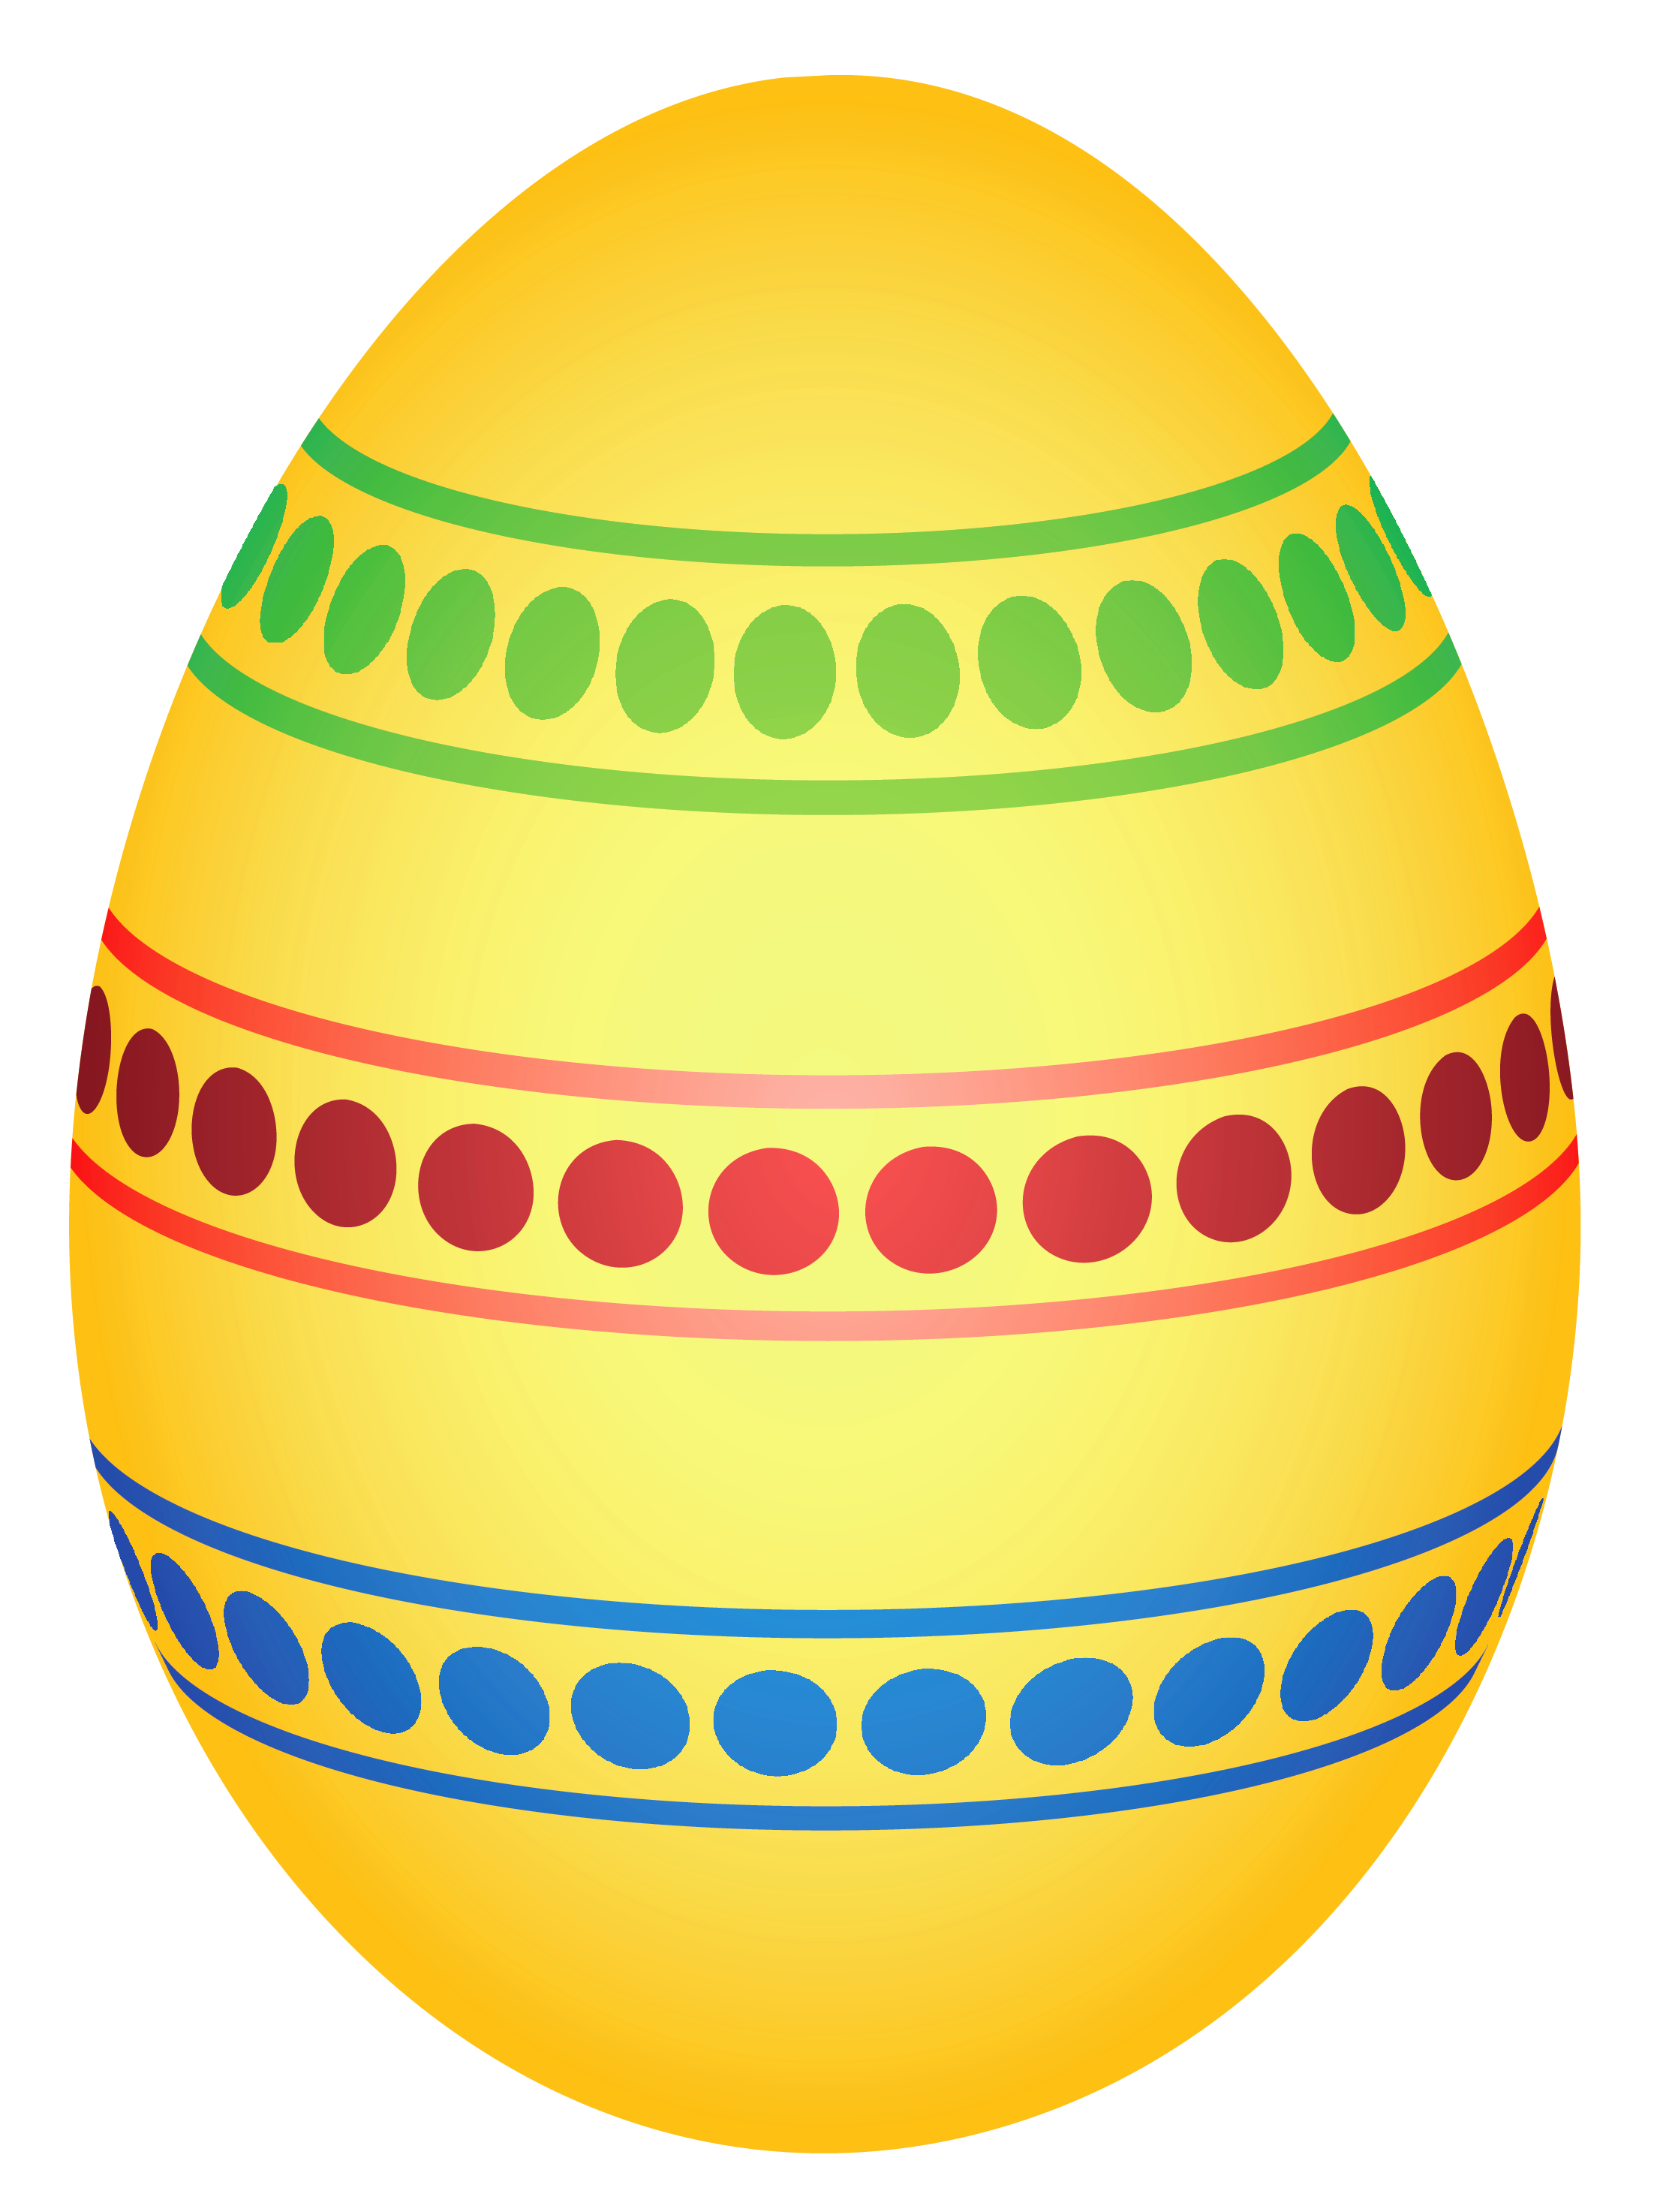 Yellow easter egg png. Colorful dotted clipairt picture